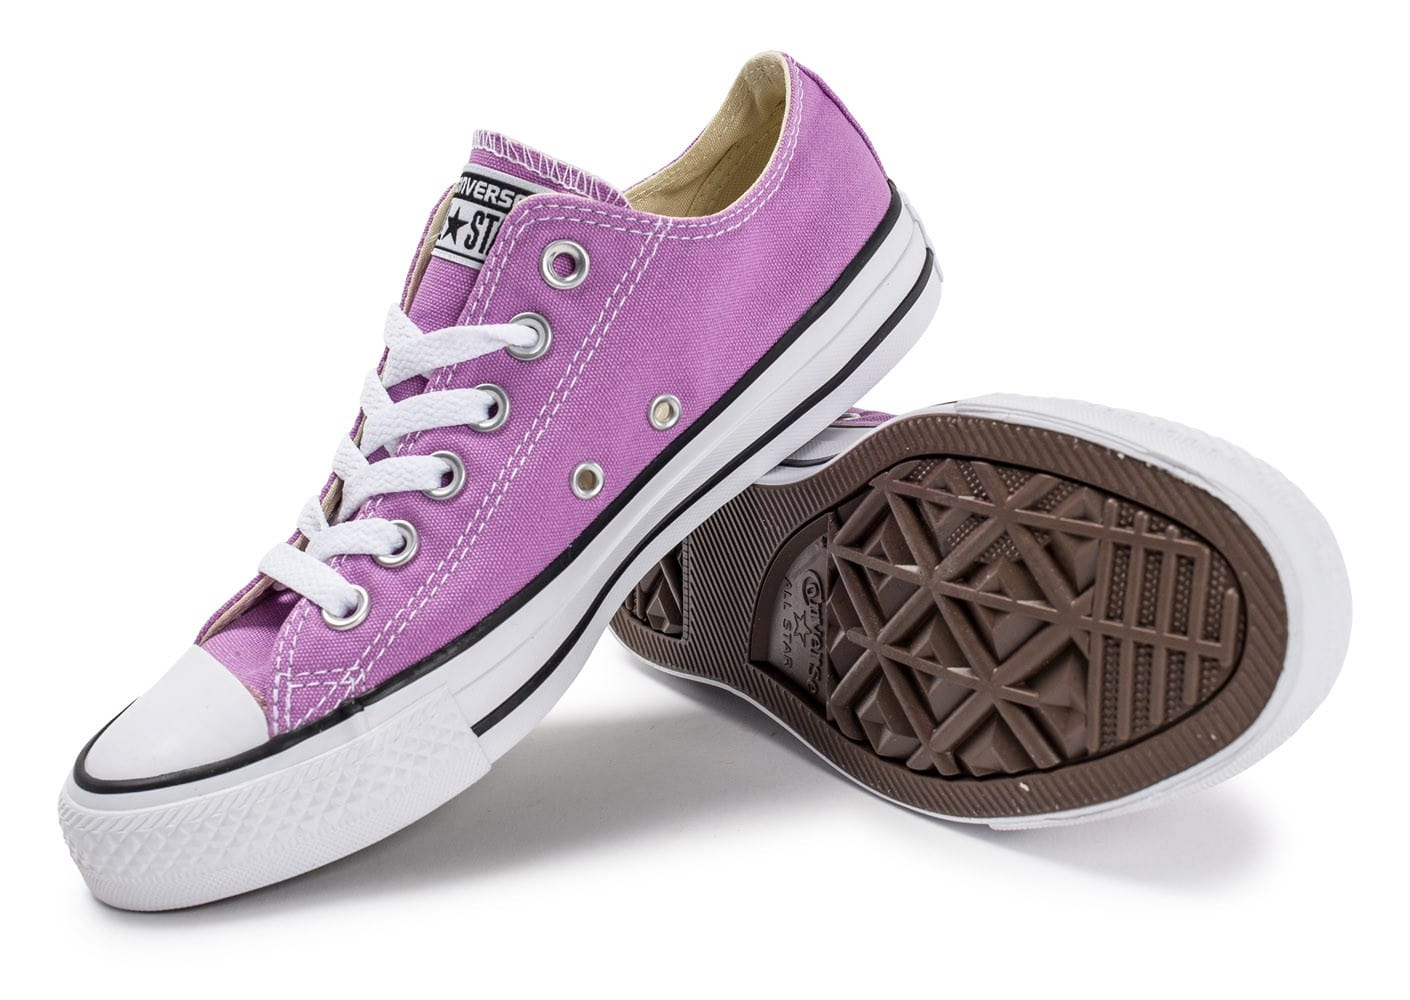 converse chuck taylor all star pink